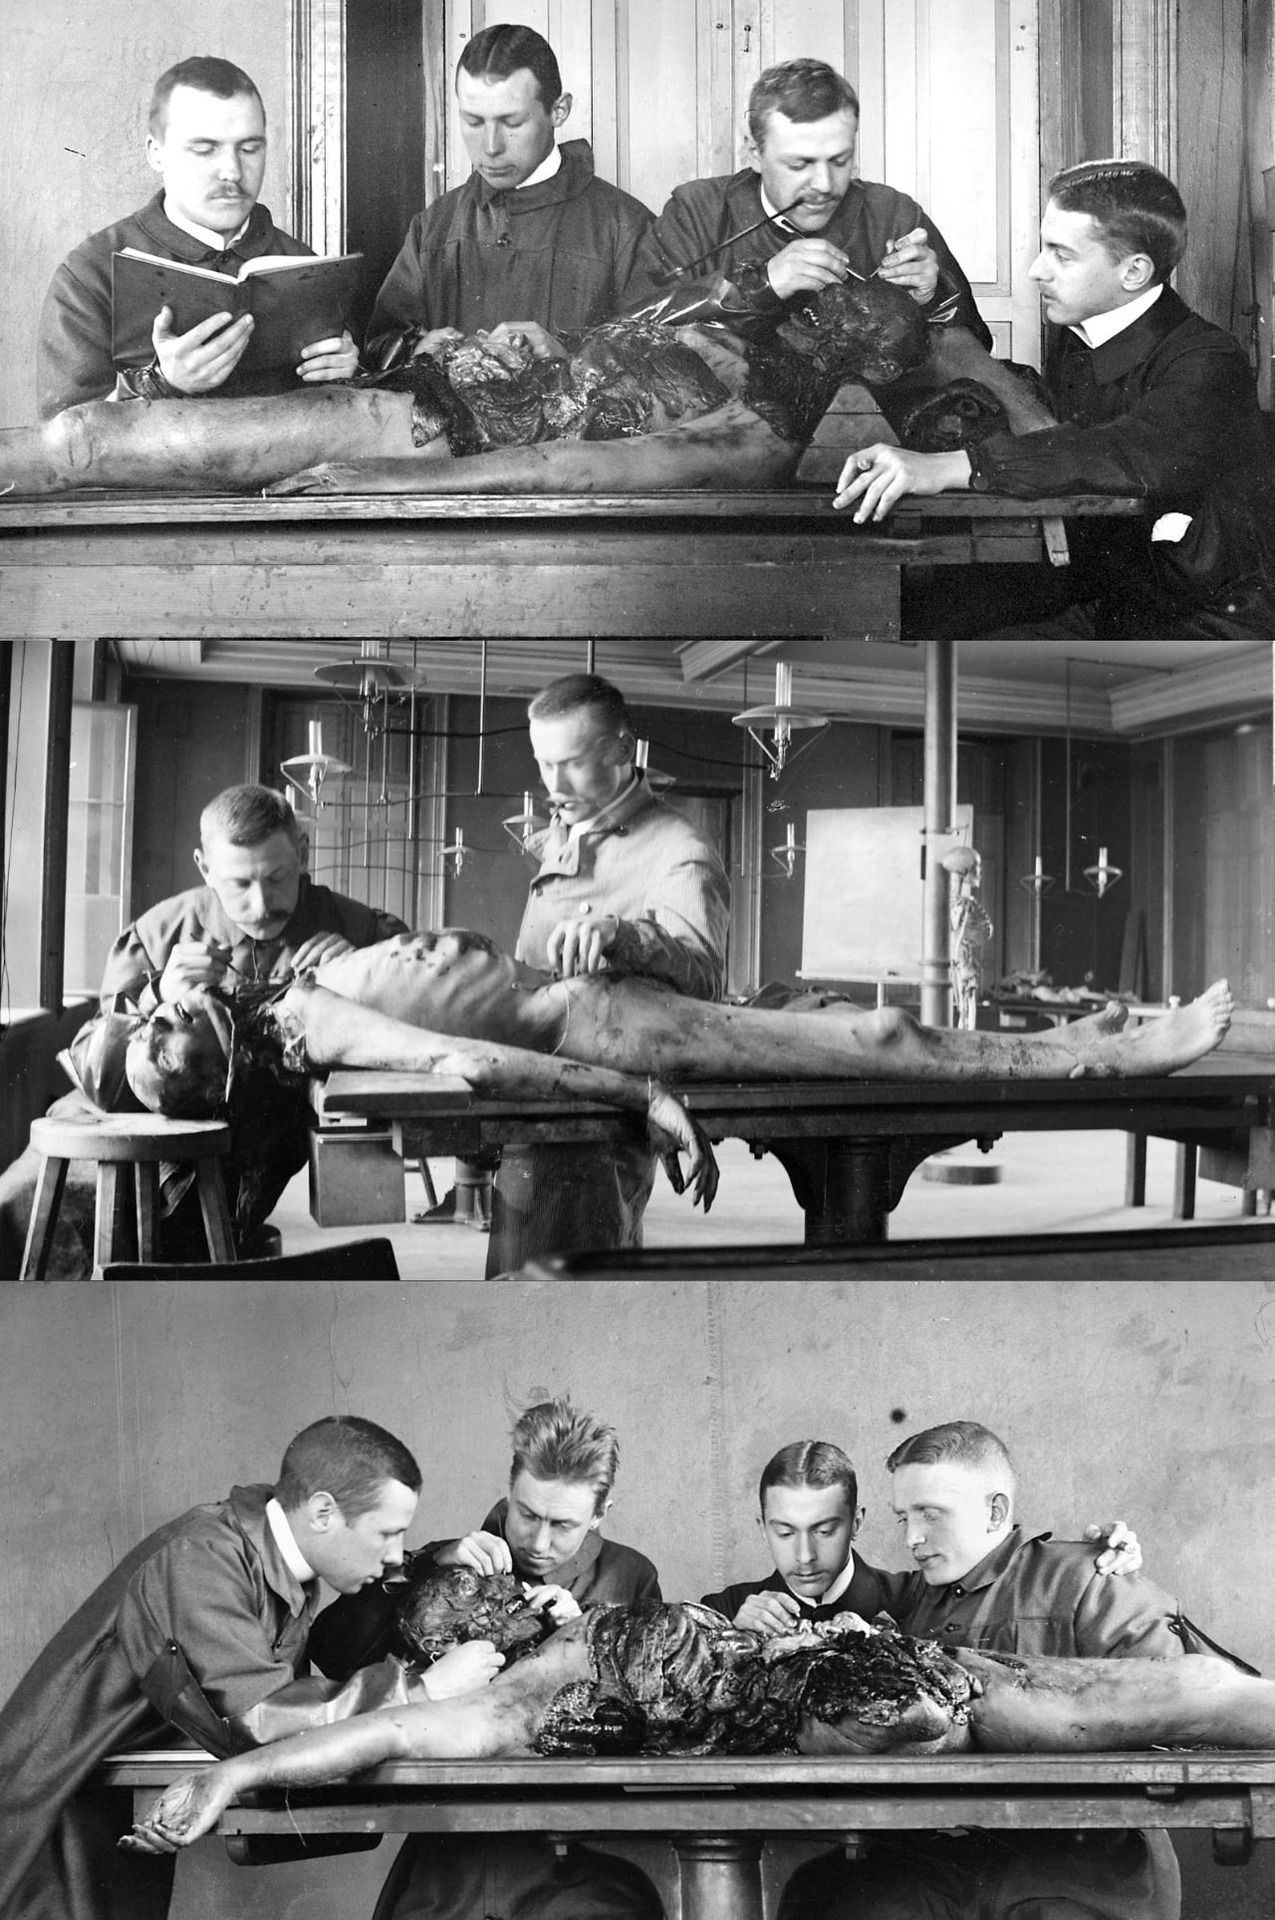 Vintage autopsy photos during 1900